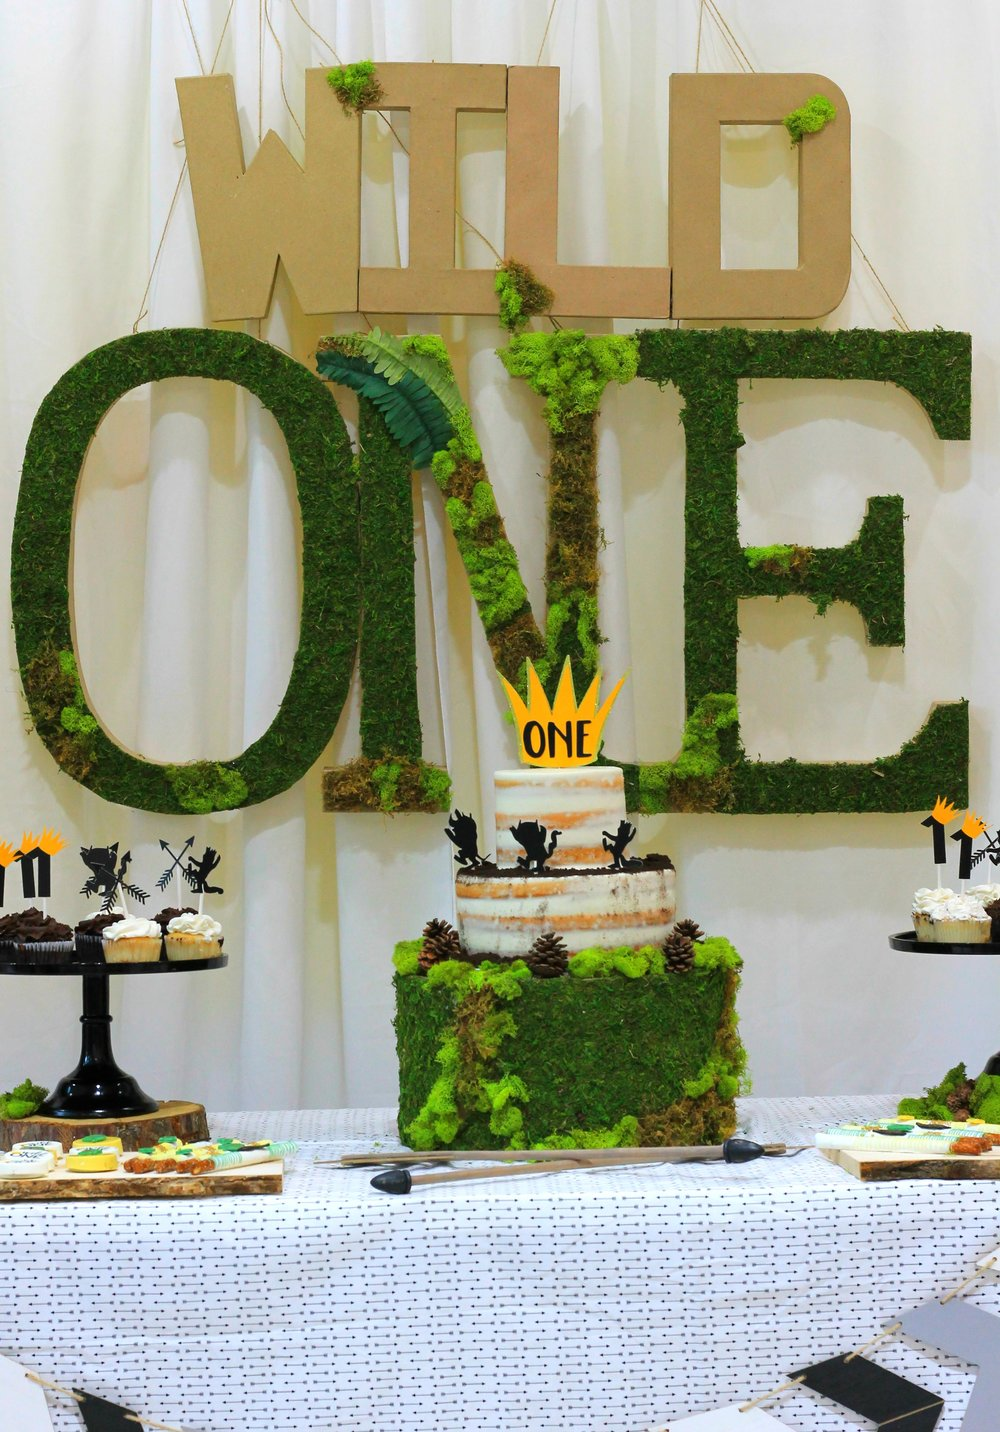 Wild One-Wild one party ideas-wild one birthday decor-wild one party ideas-first birthday ideas-first birthday party ideas-www.SugarPartiesLA.com.jpg